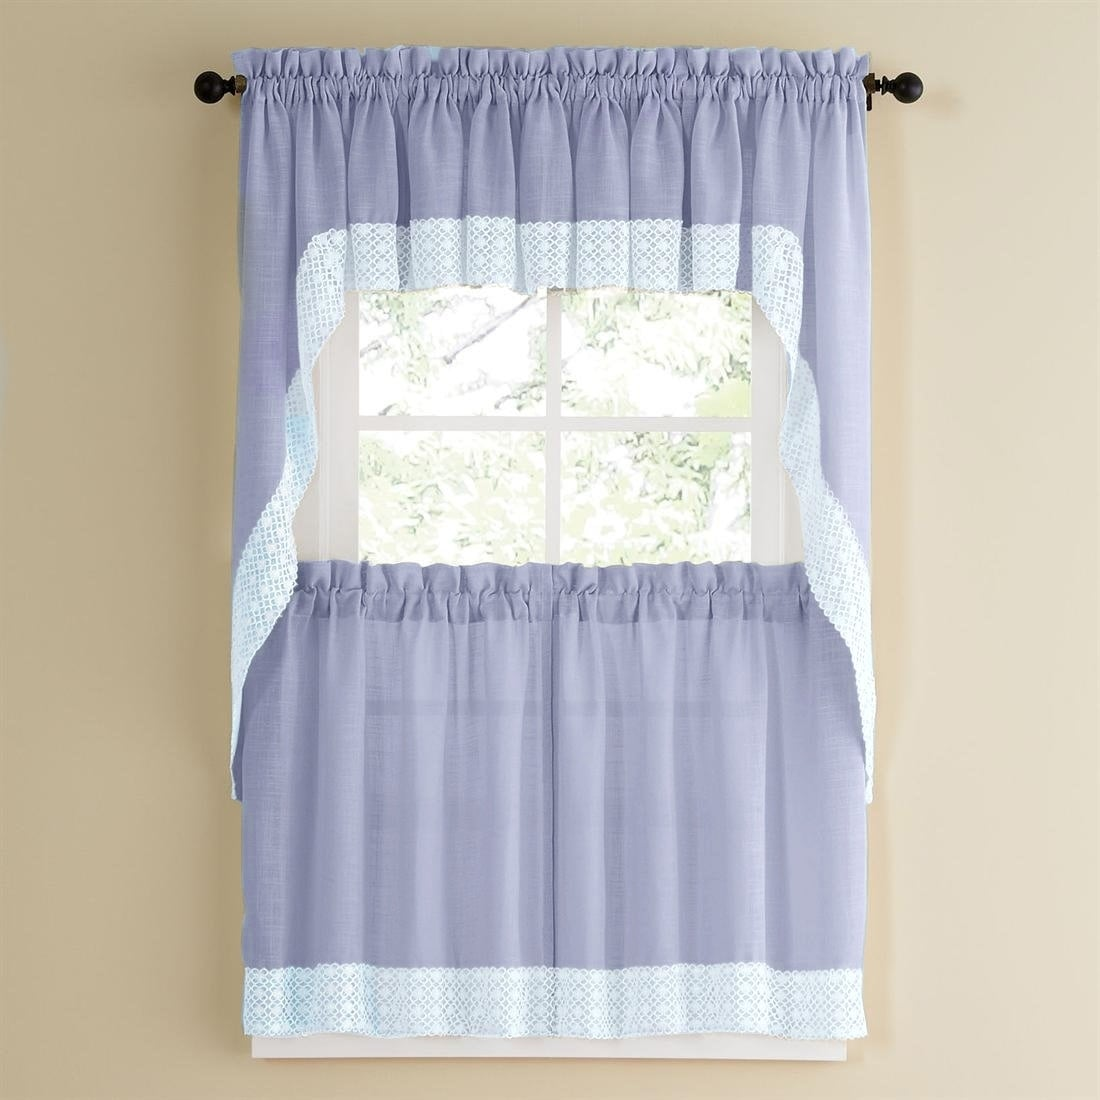 Blue Country Style Kitchen Curtains With White Daisy Lace Accent Overstock 10195262